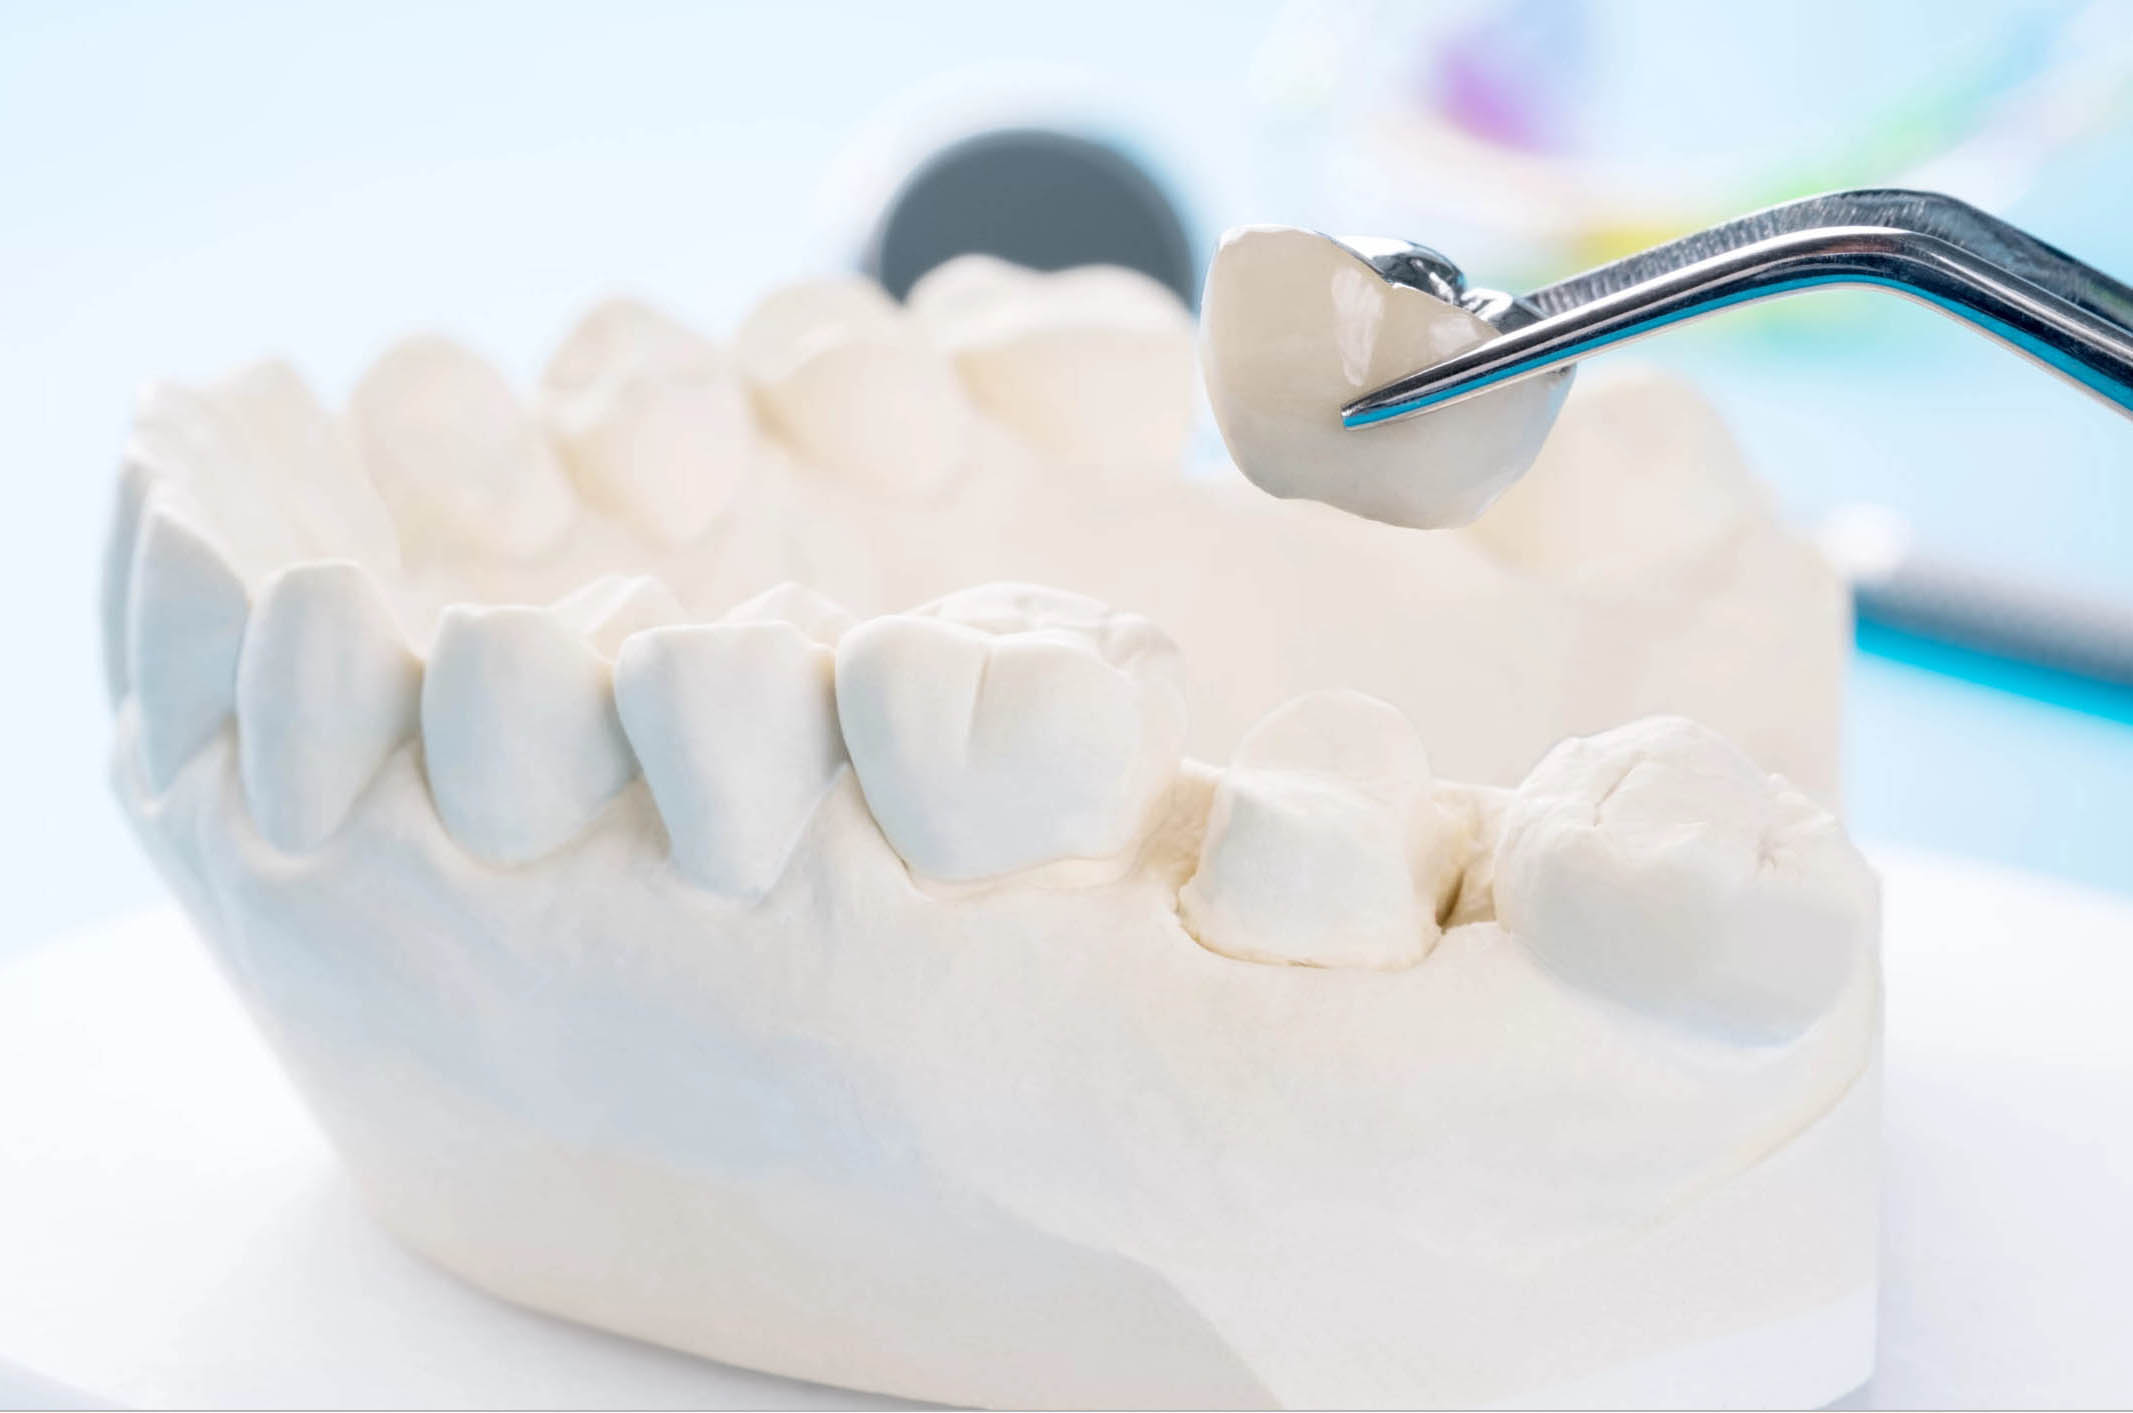 Dental crown for tooth decay